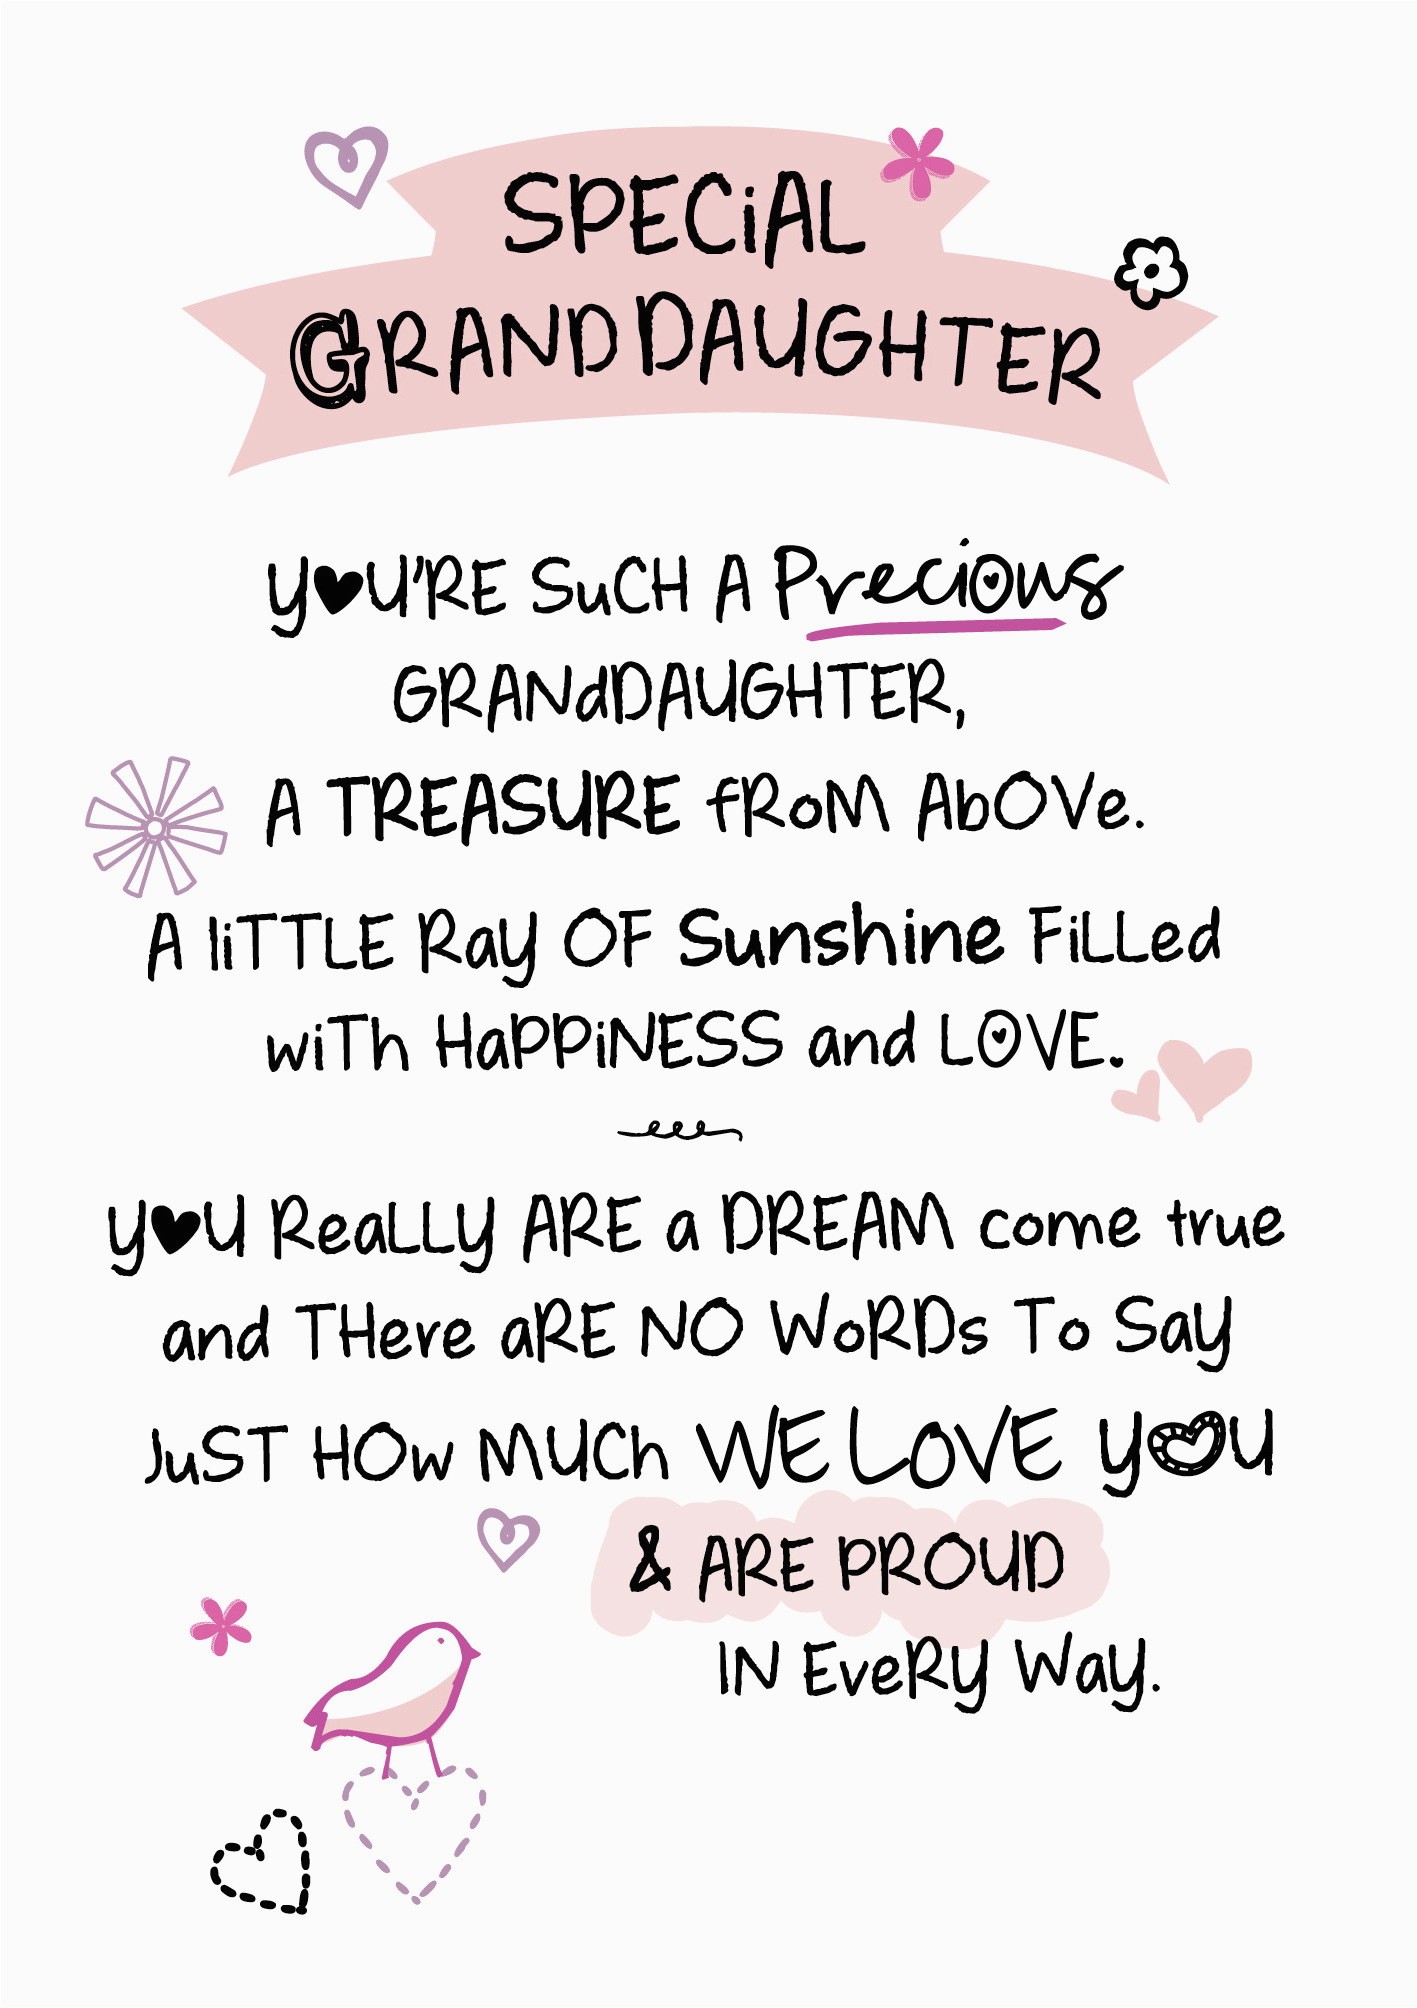 special granddaughter inspired words greeting card blank